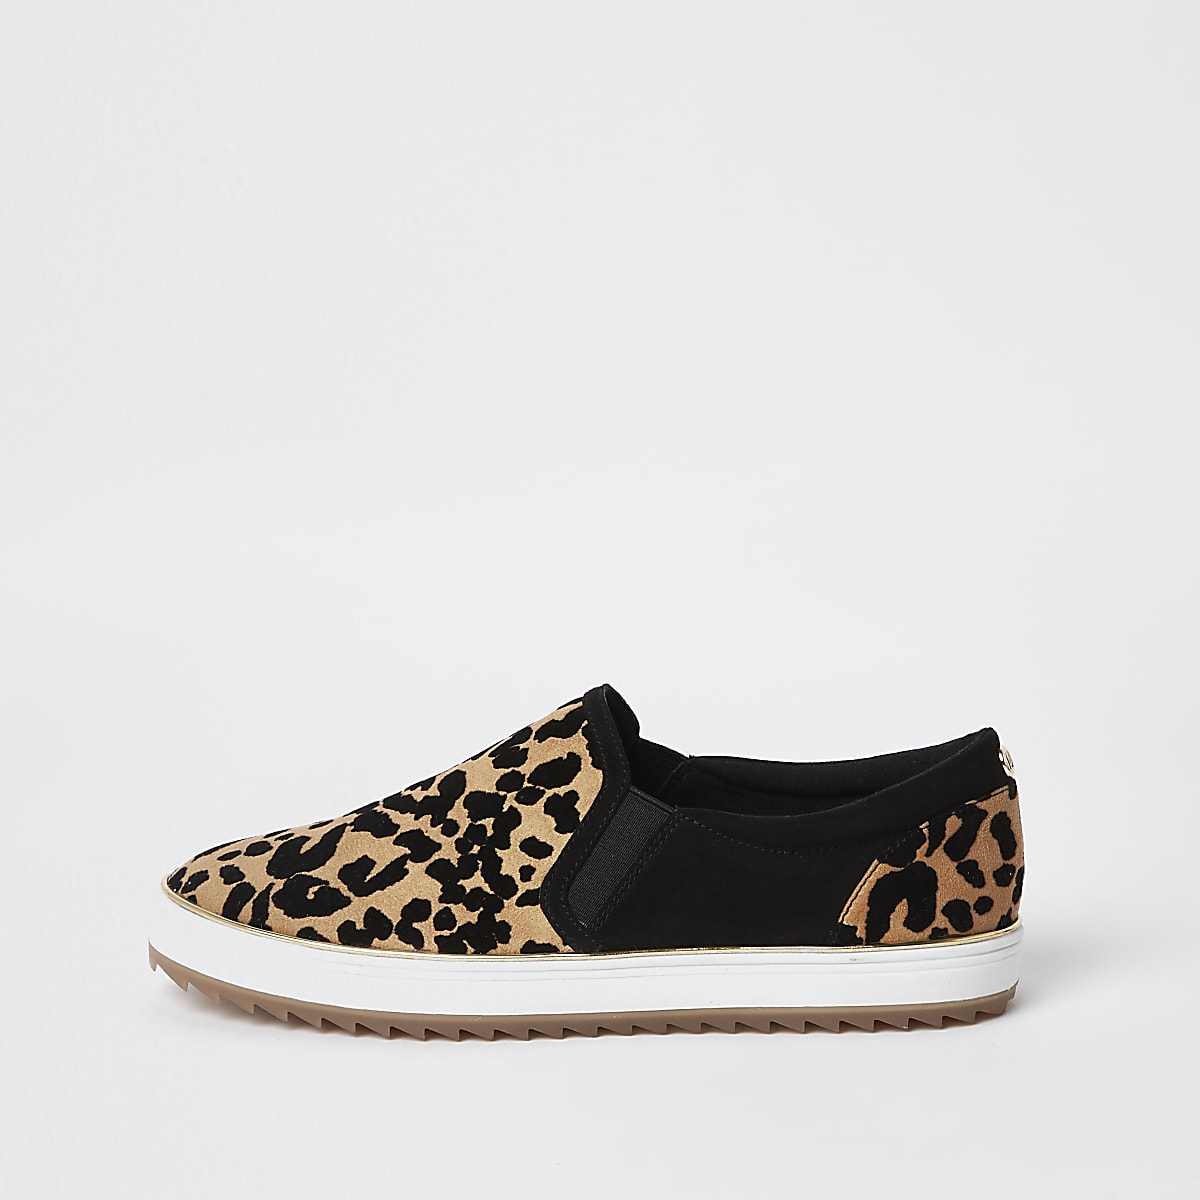 a9cf4aeff Brown leopard print slip on trainers - Plimsolls - Shoes & Boots - women